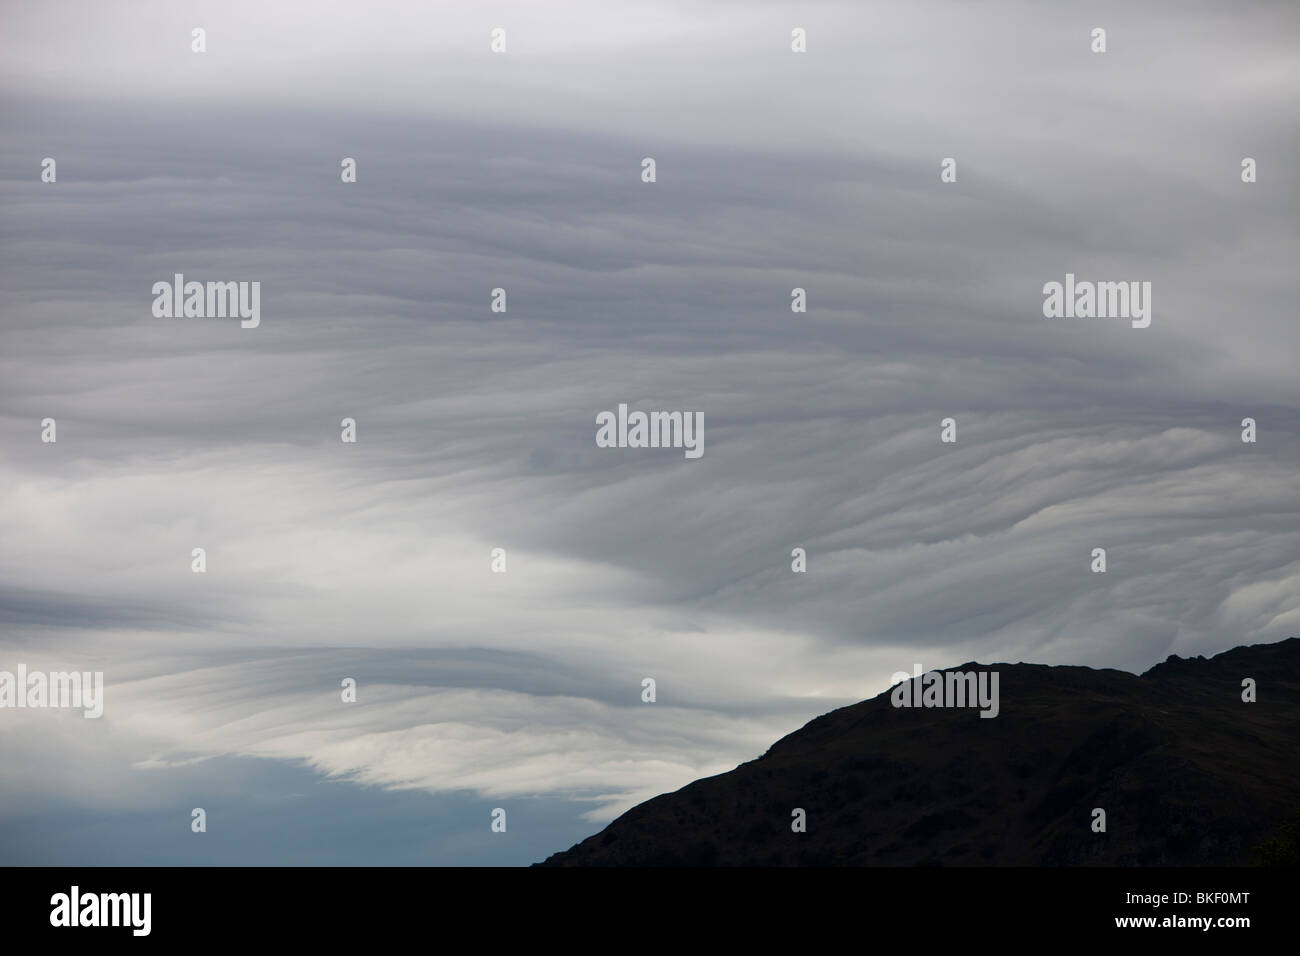 Patterns in cloud on an occluded front over the Lake District hills in Ambleside, Cumbria, UK - Stock Image